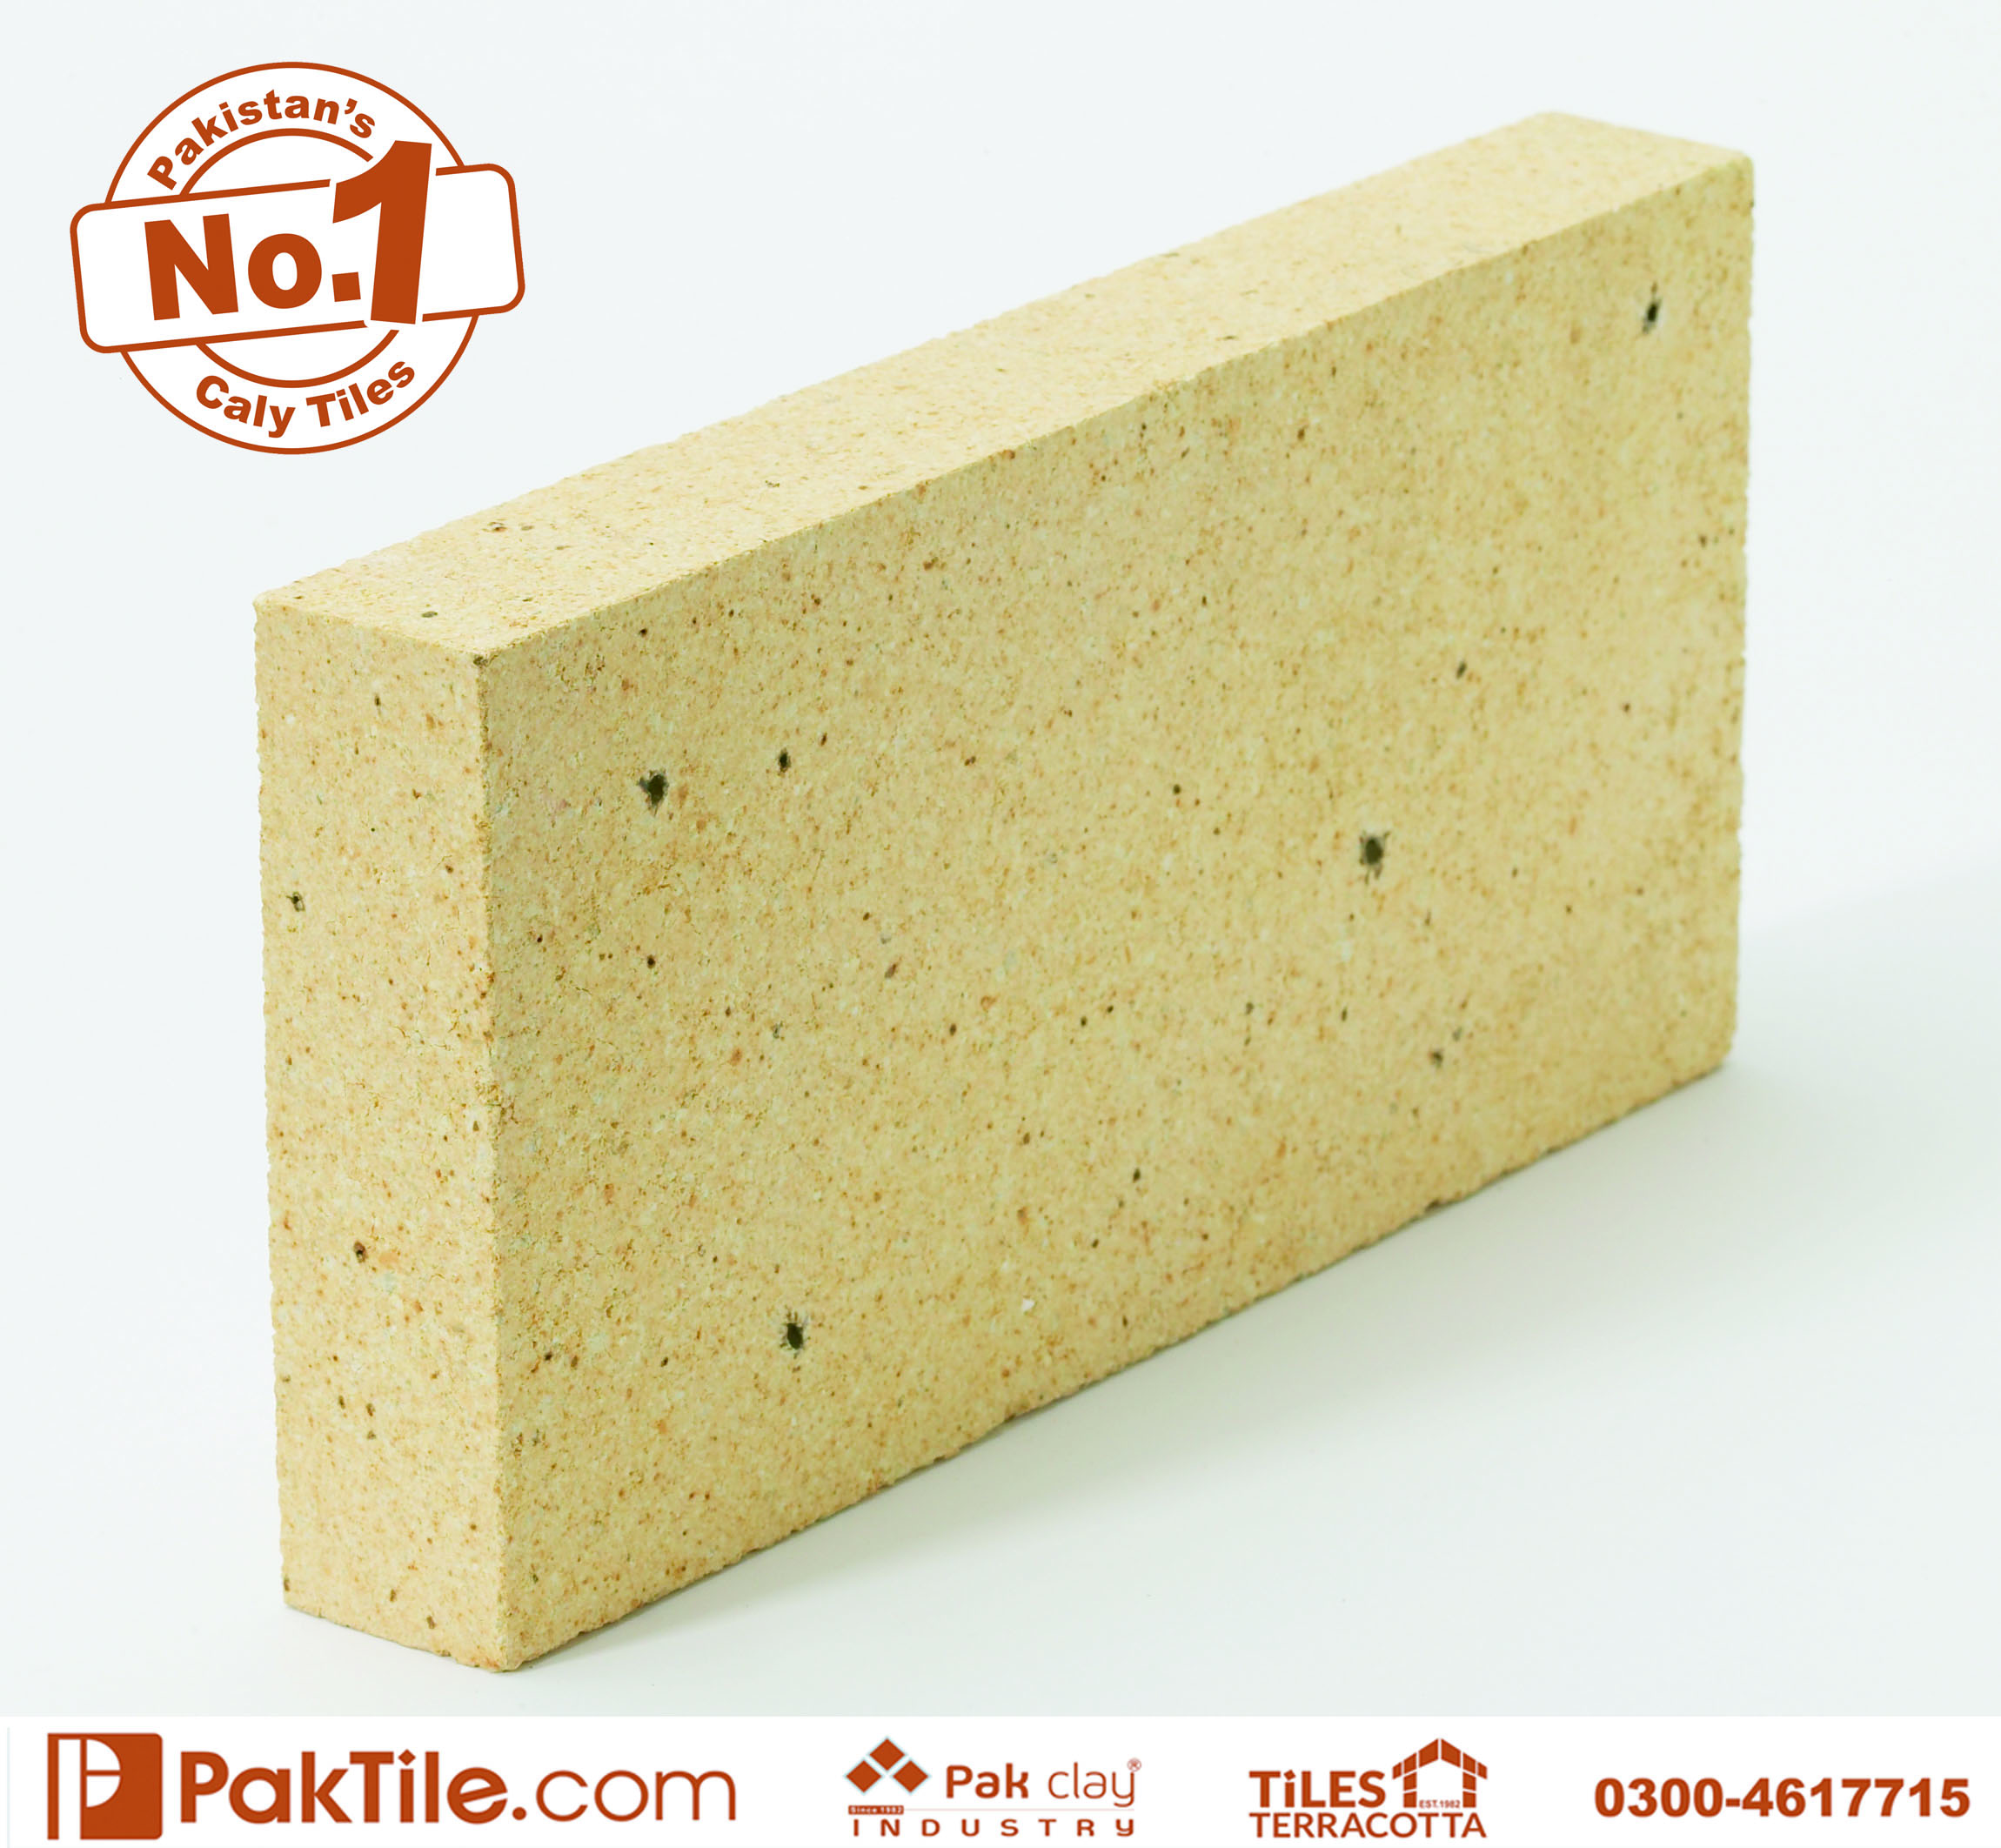 2 Refractory fire bricks price in pakistan clay red and white bricks Insulation wall and floor home tiles products supplier rate